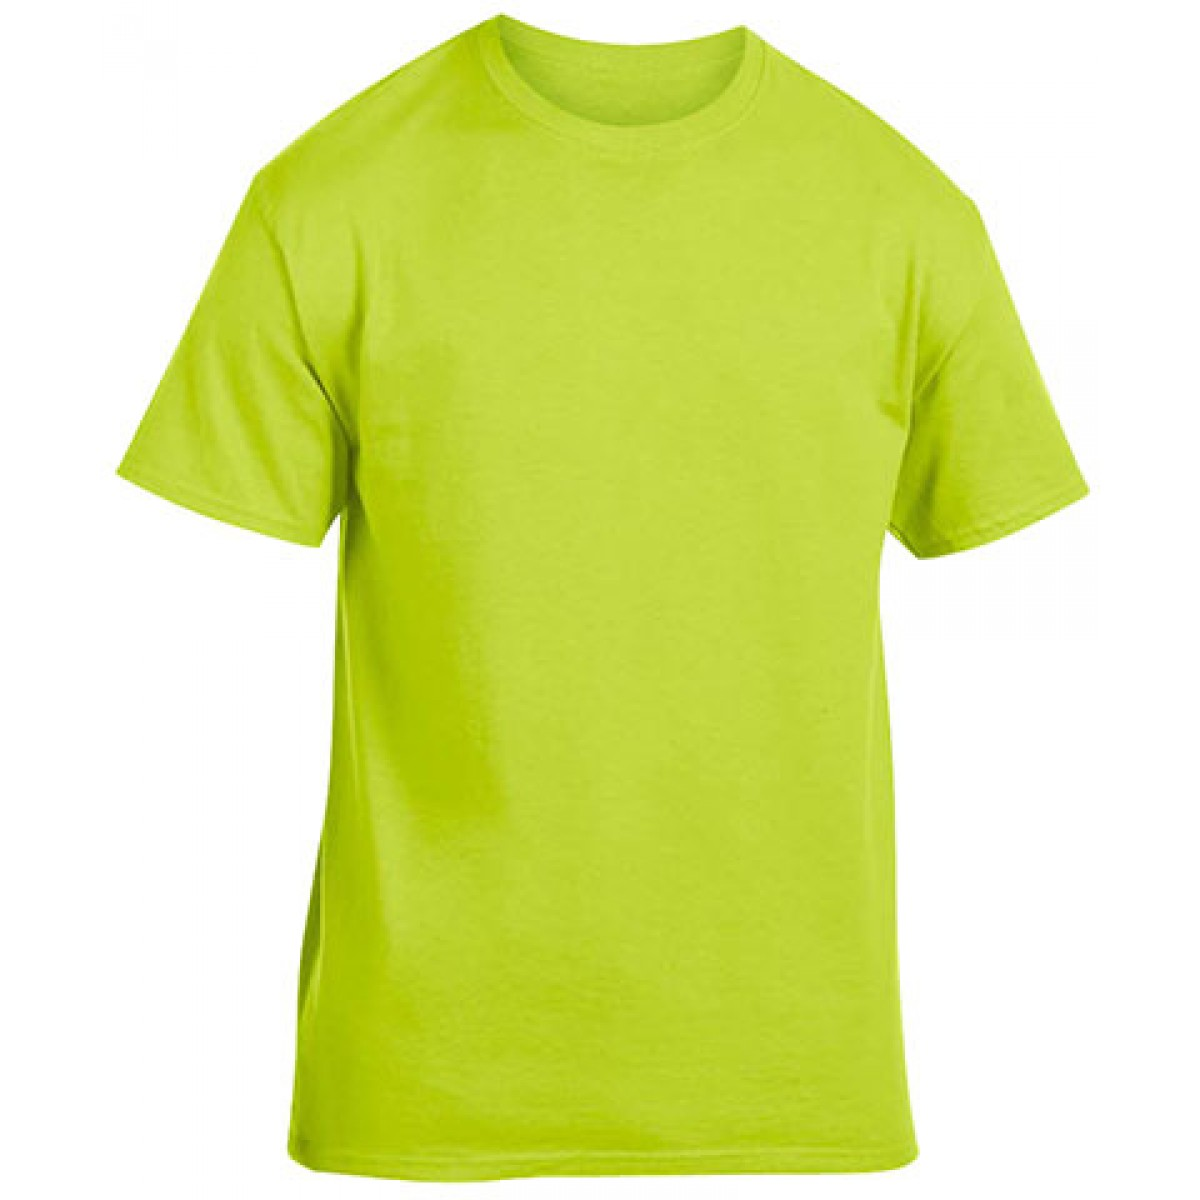 Cotton Short Sleeve T-Shirt-Safety Green-YL